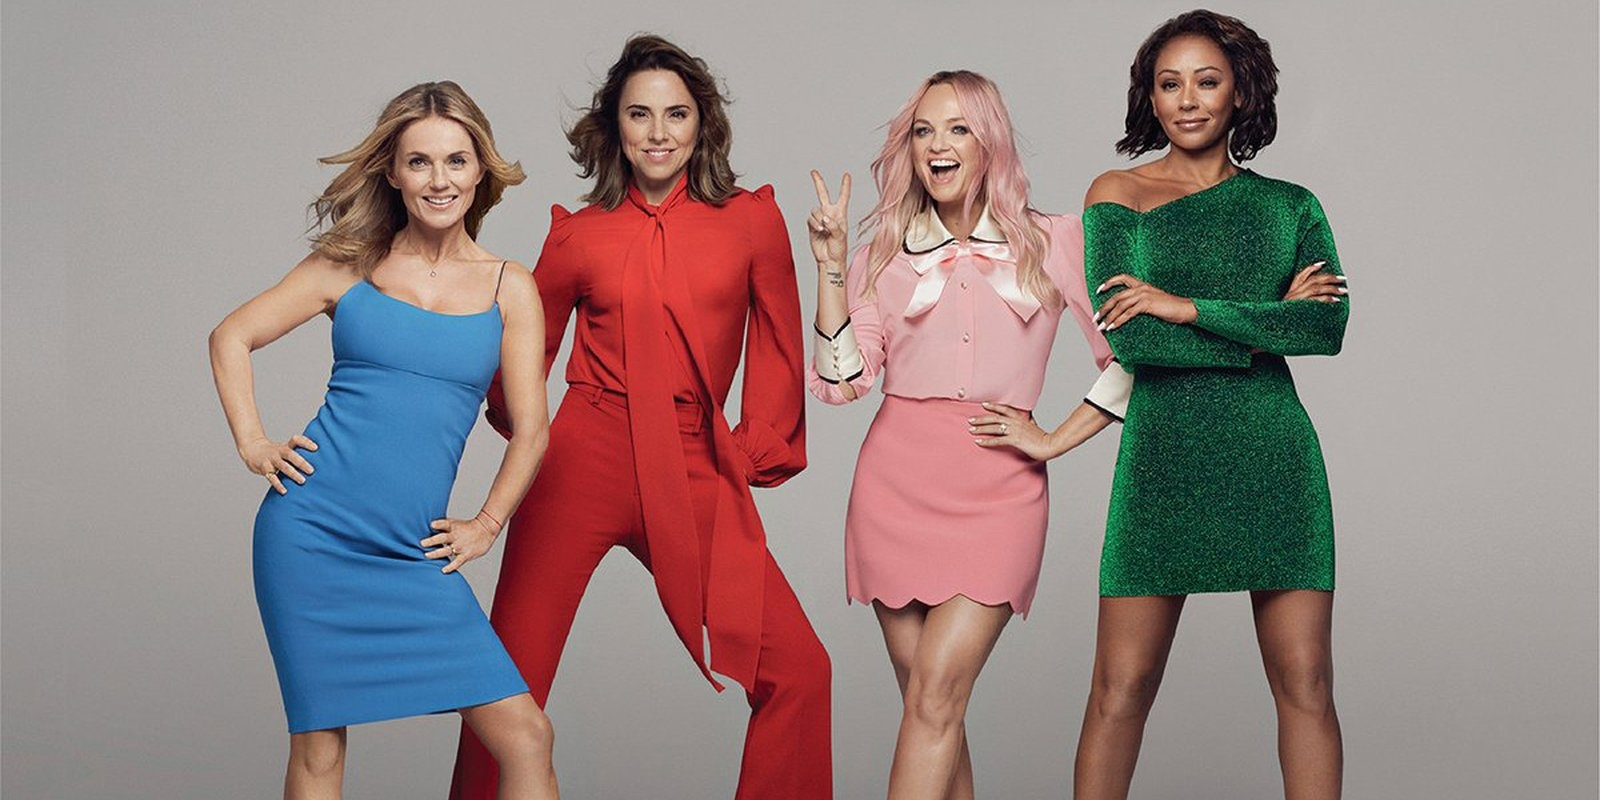 Spice Girls to relaunch iconic music videos in 4K resolution |